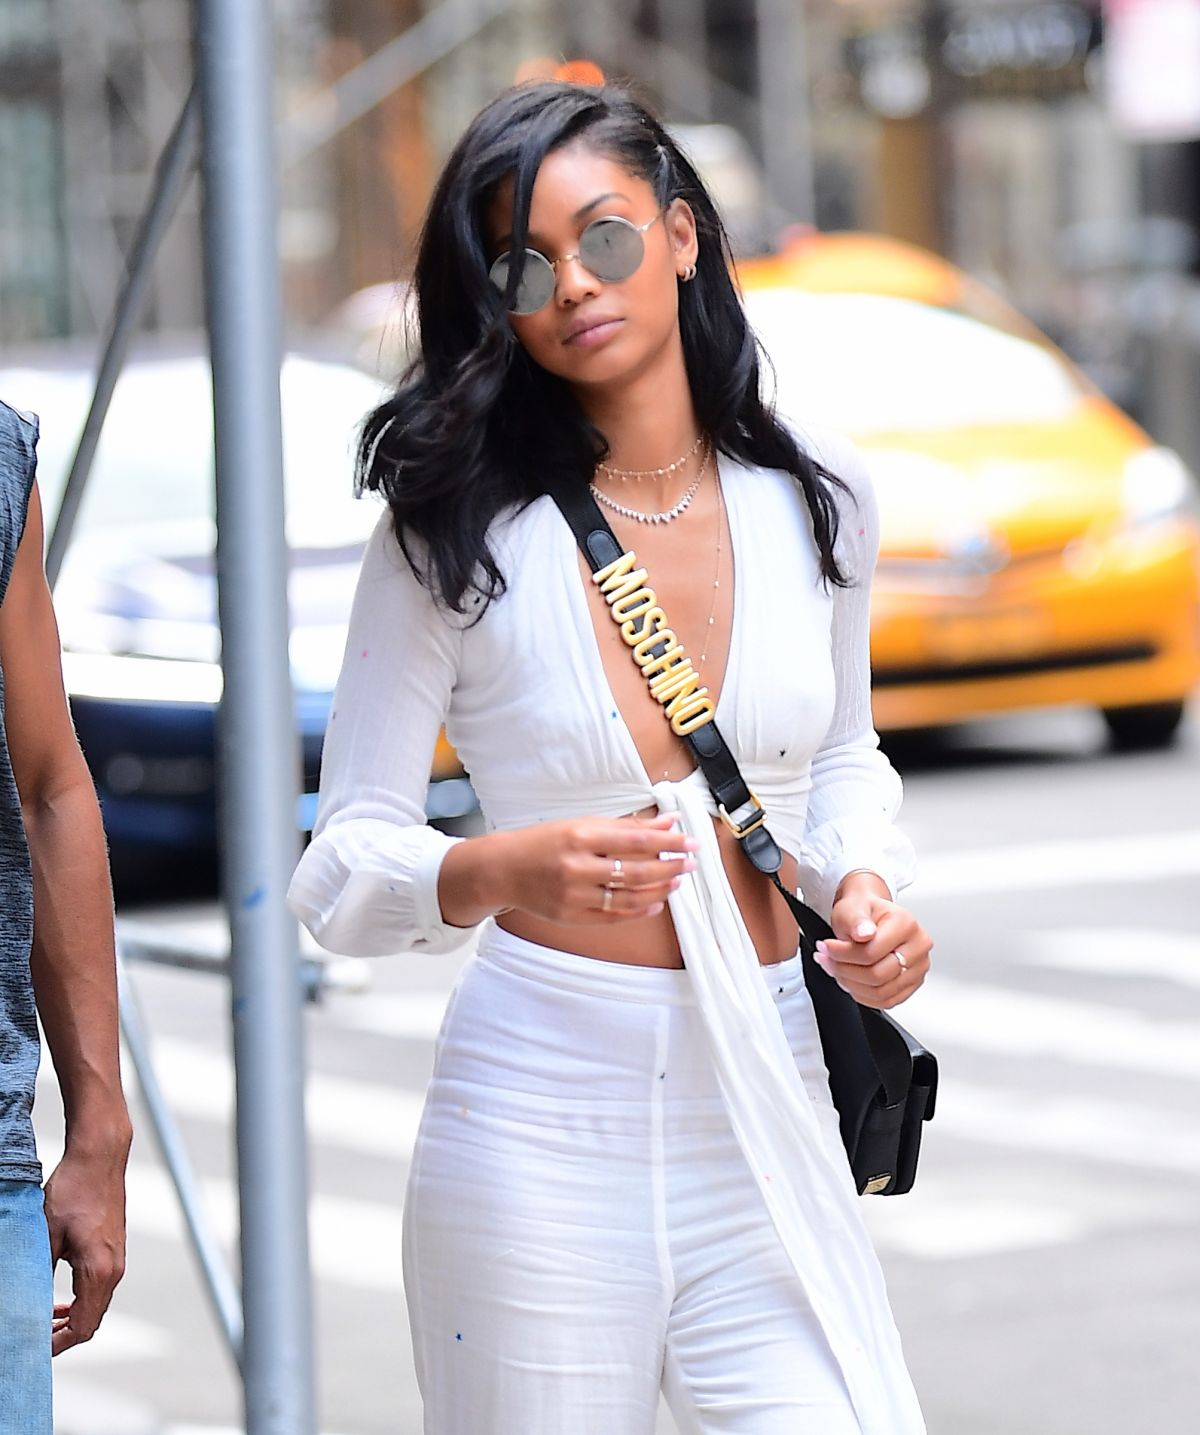 Chanel Iman naked (39 foto and video), Topless, Paparazzi, Selfie, braless 2006